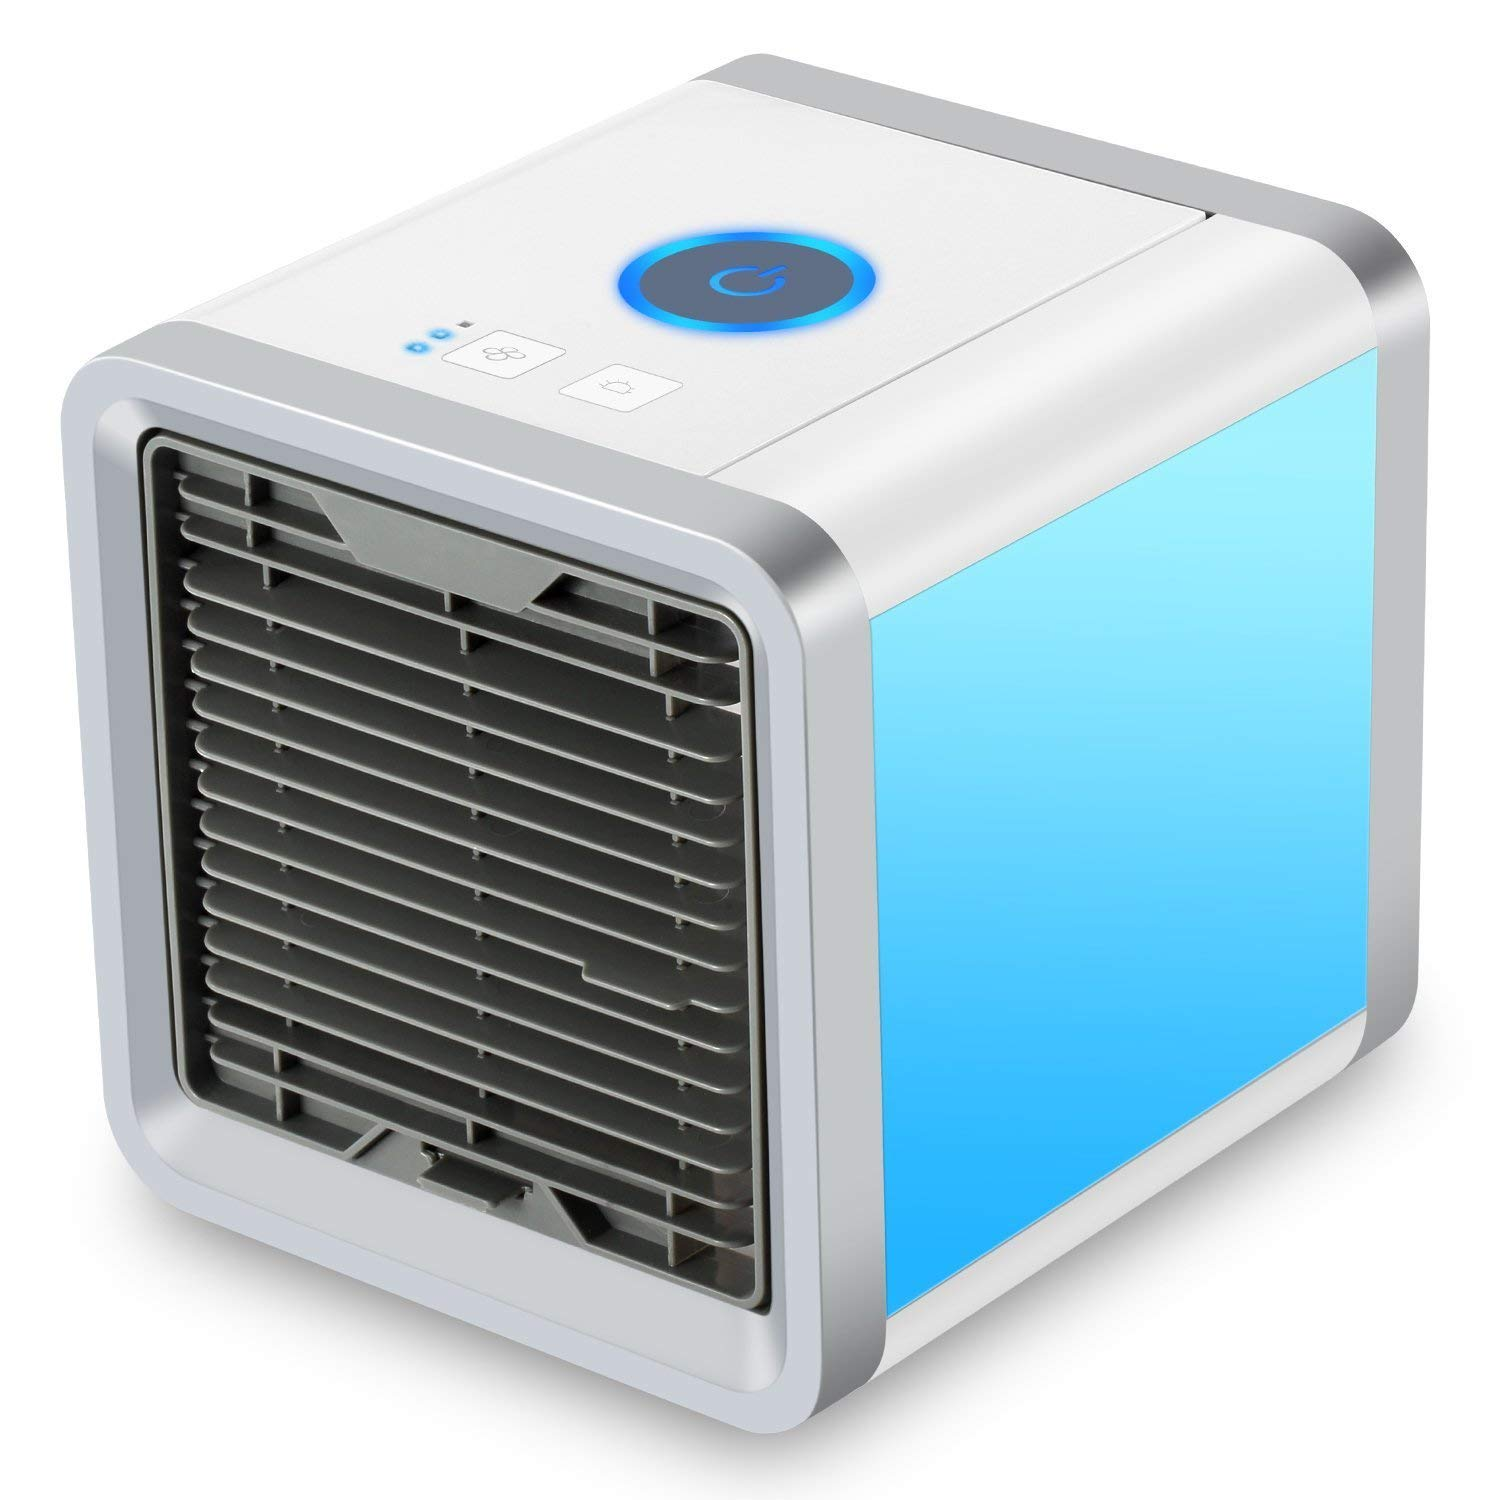 Arctic Air Personal Space Cooler, Portable Air Conditioner Humidifier Purifier for Office, Dorm, Outdoor Camping, USB Charging Supported